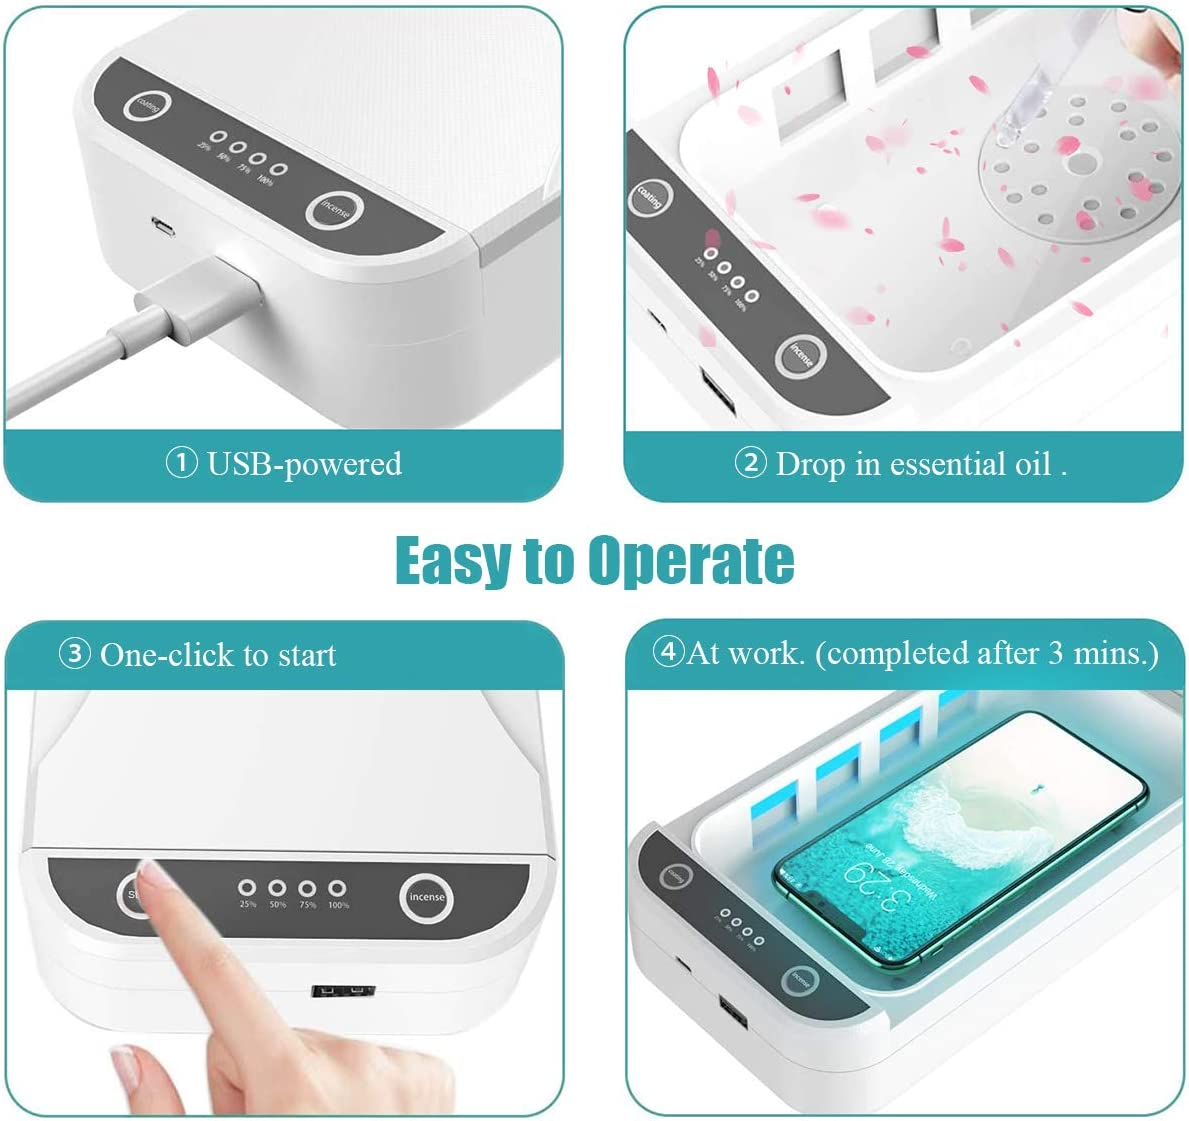 Multi-Function with Aromatherapy and USB Charger Compatible with iOS Android Phones up to 6.6 Inches. Portable Smart Phone Cleaner Box Kongwal Cell Phone Cleaner